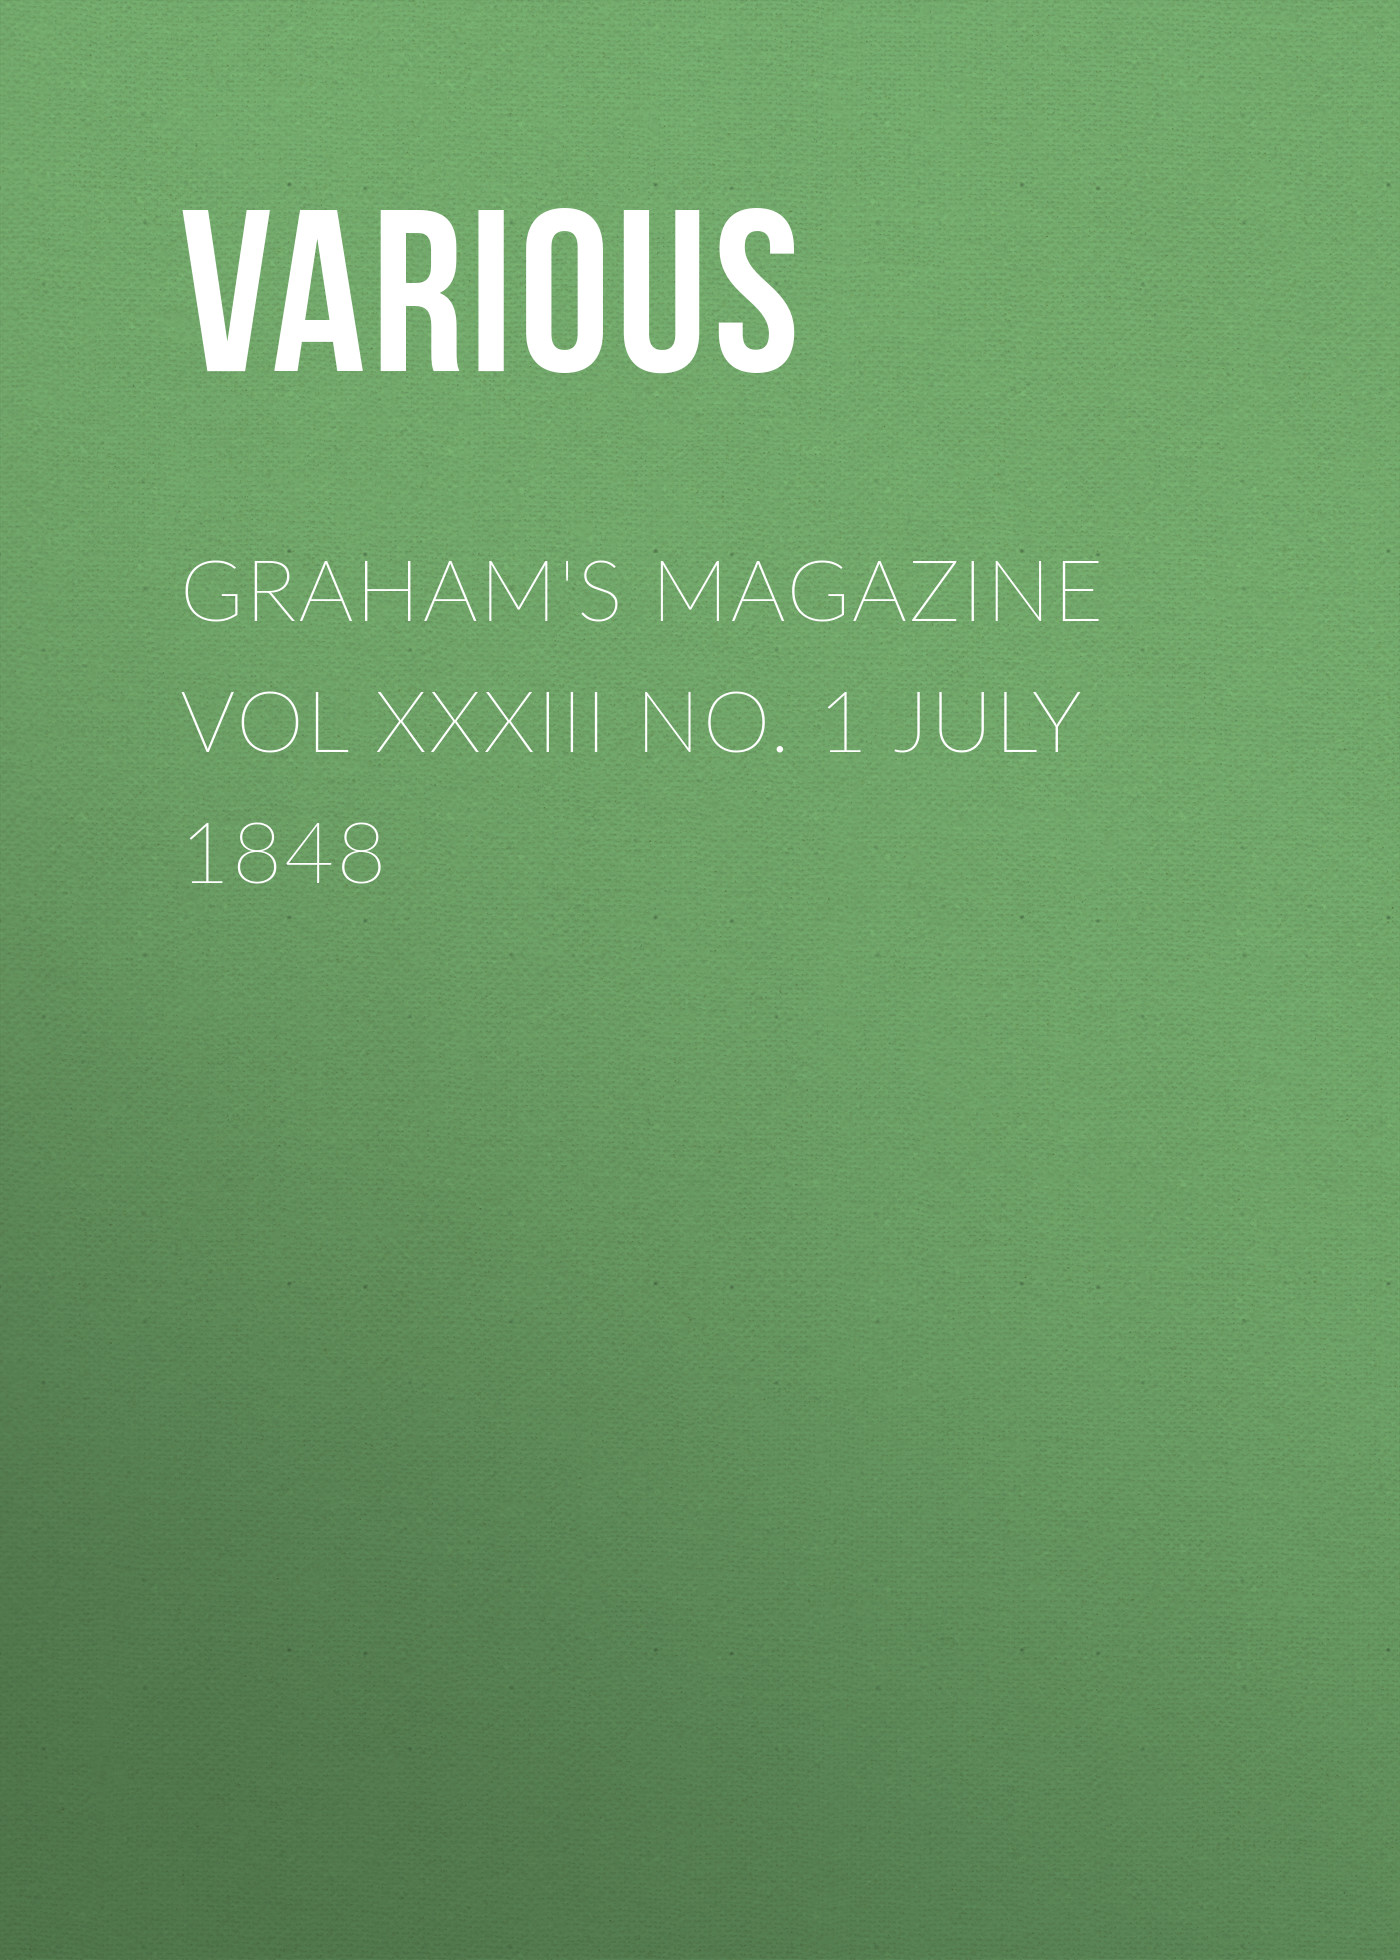 Various Graham's Magazine Vol XXXIII No. 1 July 1848 various beadle s dime song book no 1